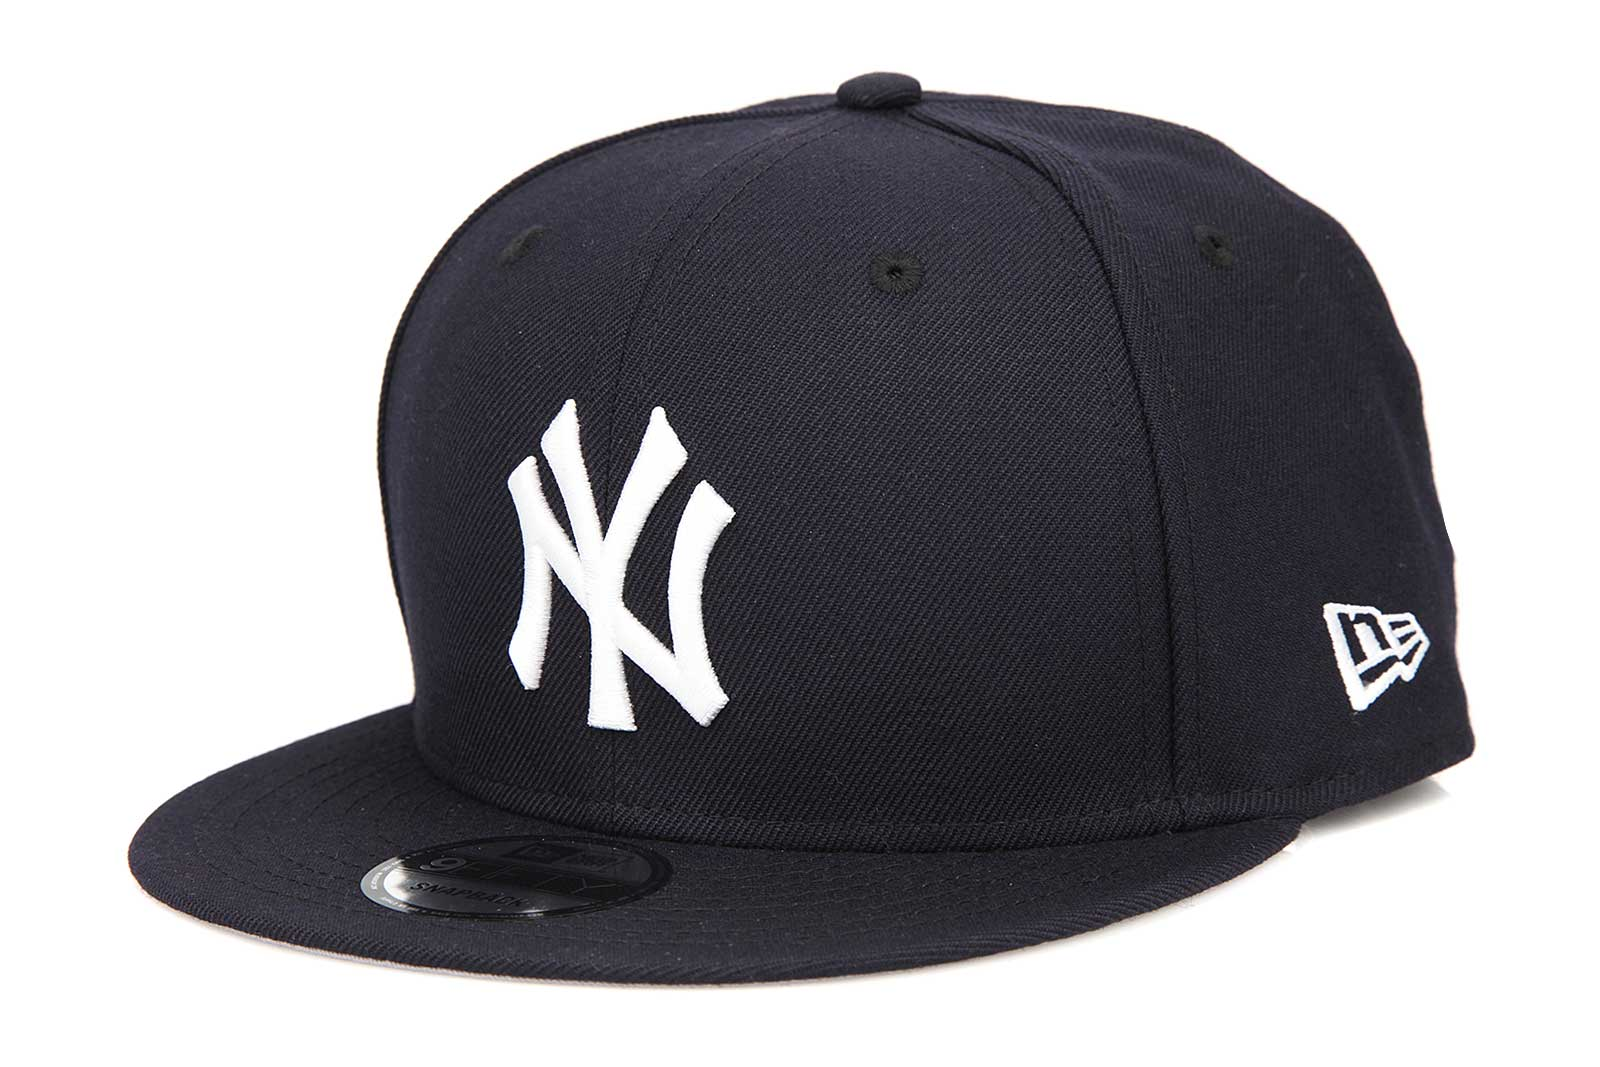 ... discount code for nj script new era 9fifty snapback hat black gray  under brim custom new 3906eec6fba9